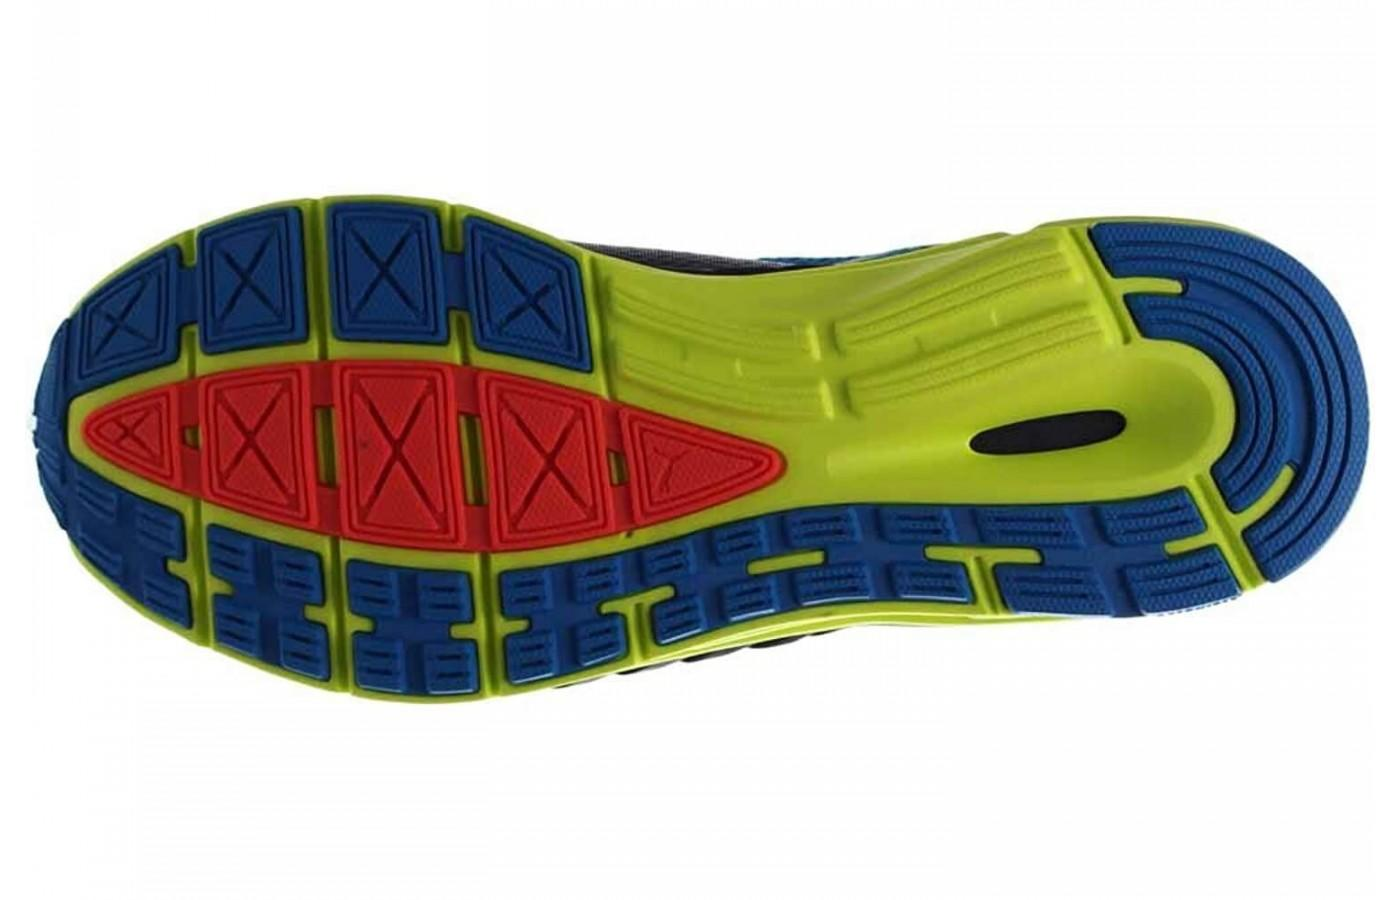 Puma Speed 500 Ignite has an Evertrack+ outsole